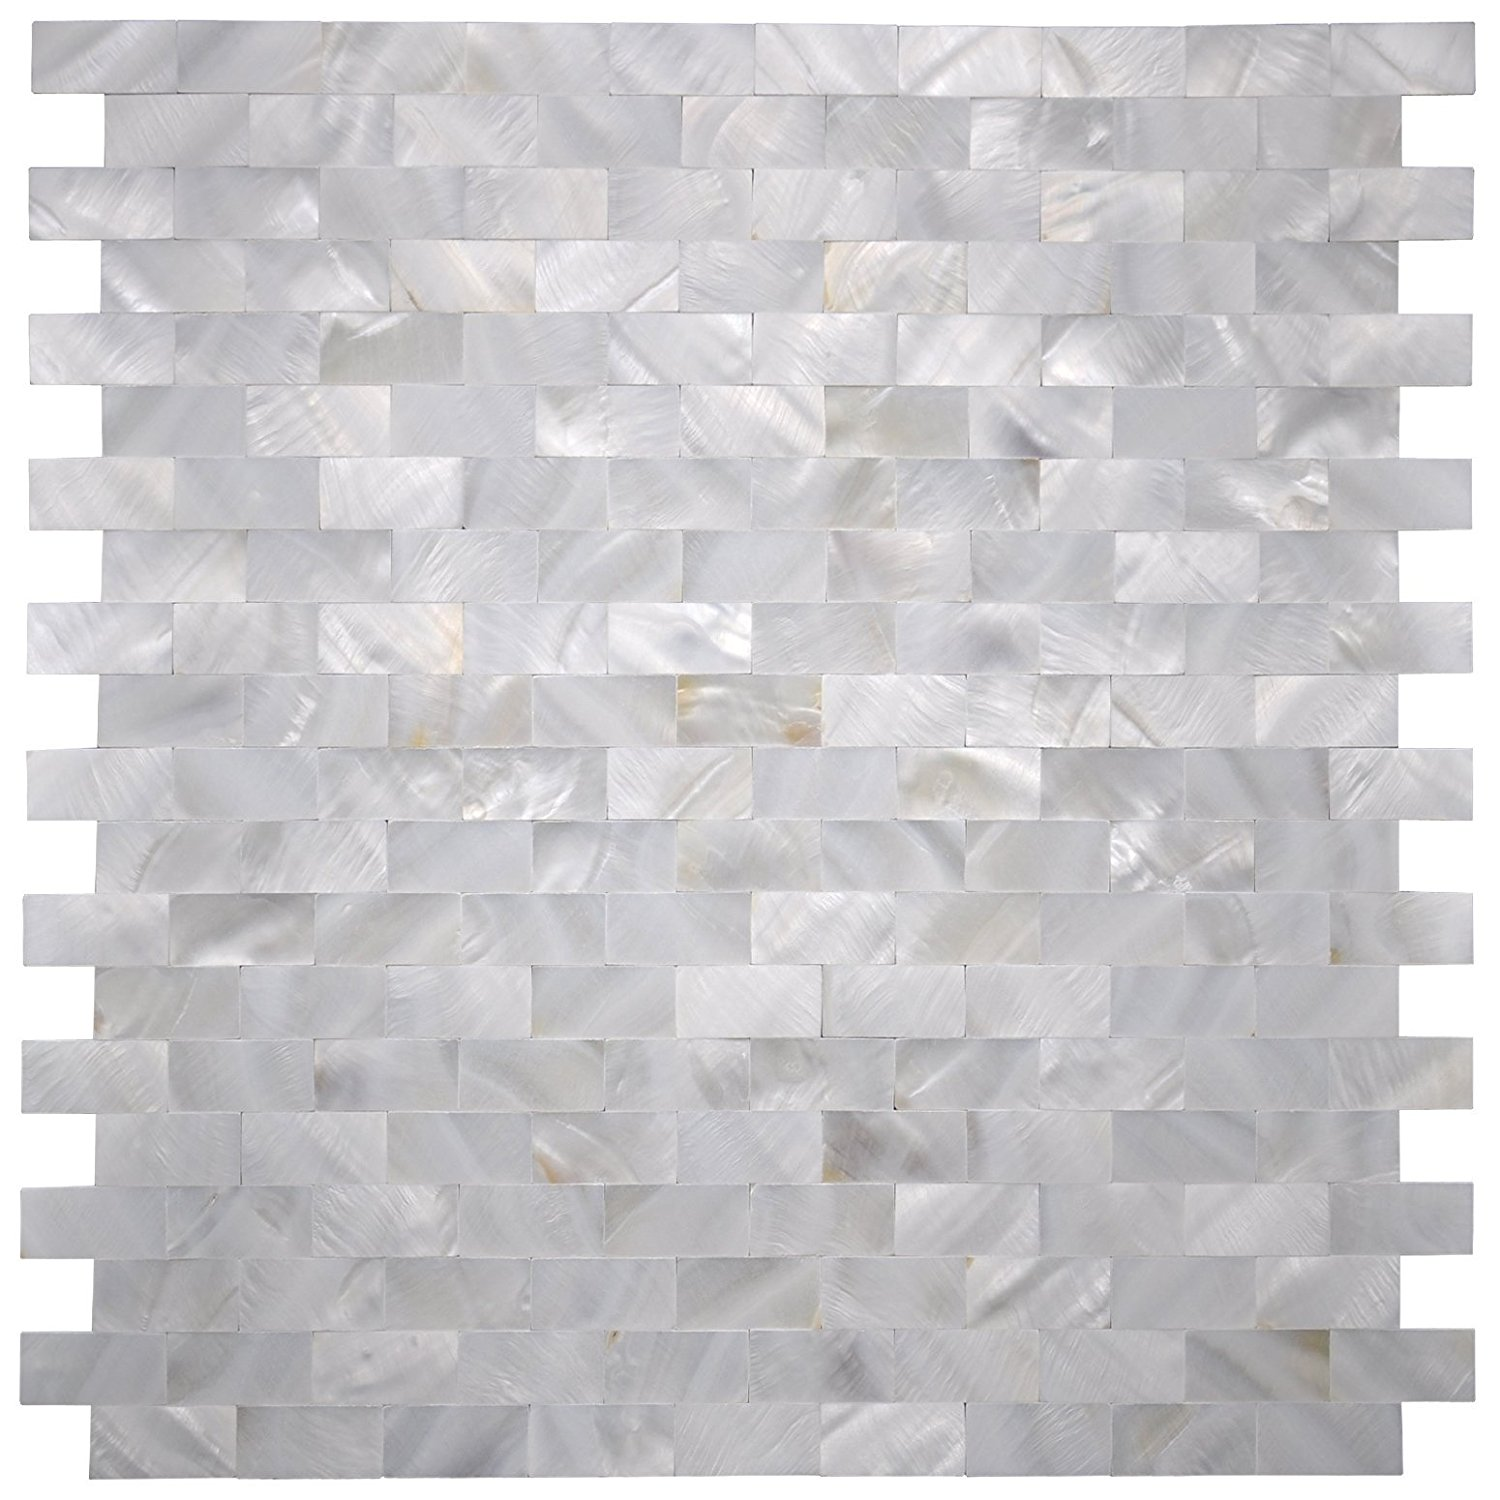 Groutless Accent Tile Wall: Great Ideas For Your Mosaic Kitchen Tiles